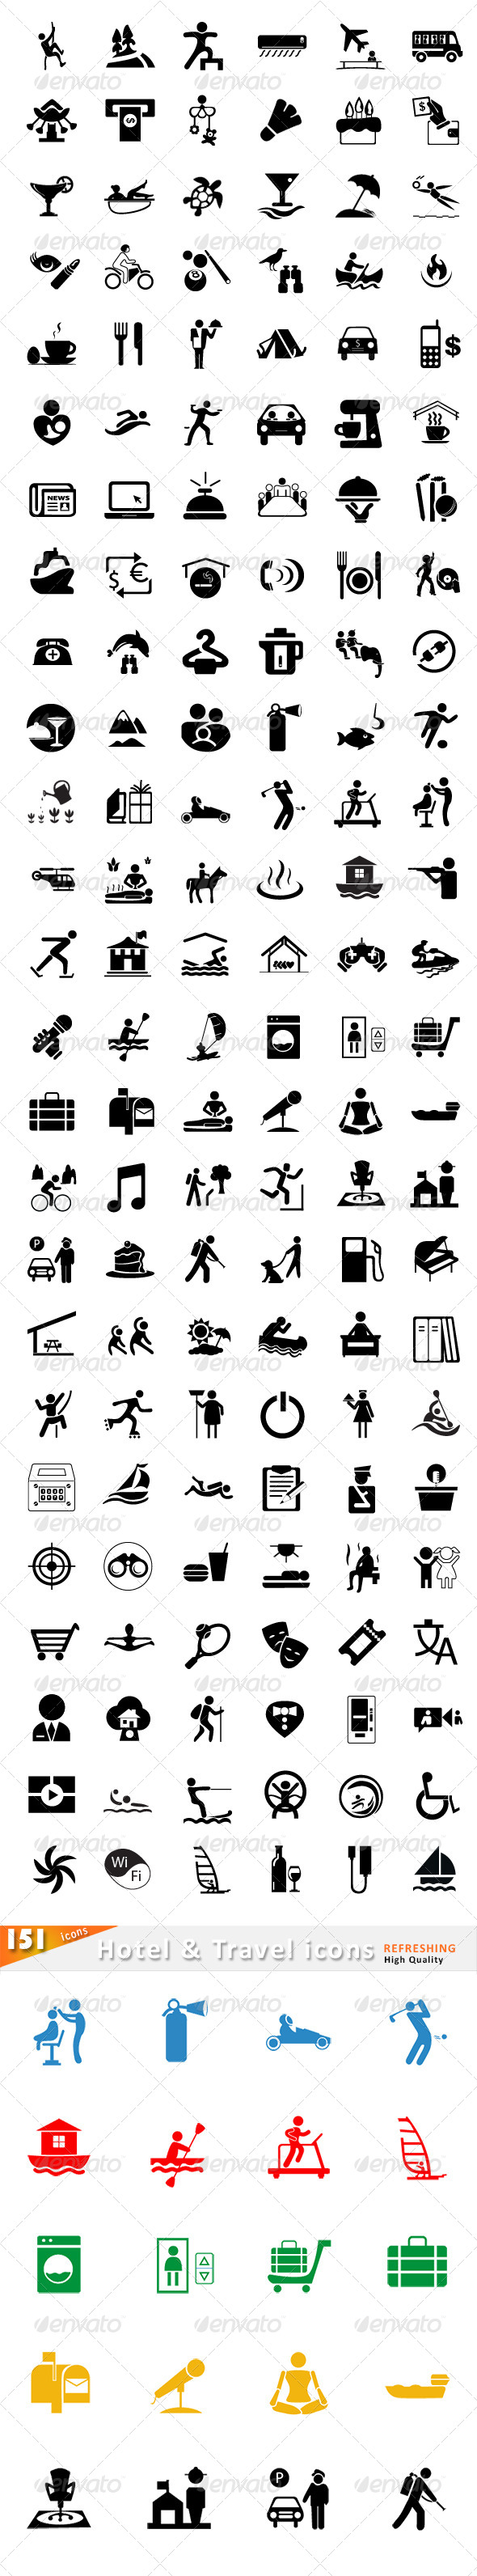 GraphicRiver 76 Travel and Hotel Icons 6429310